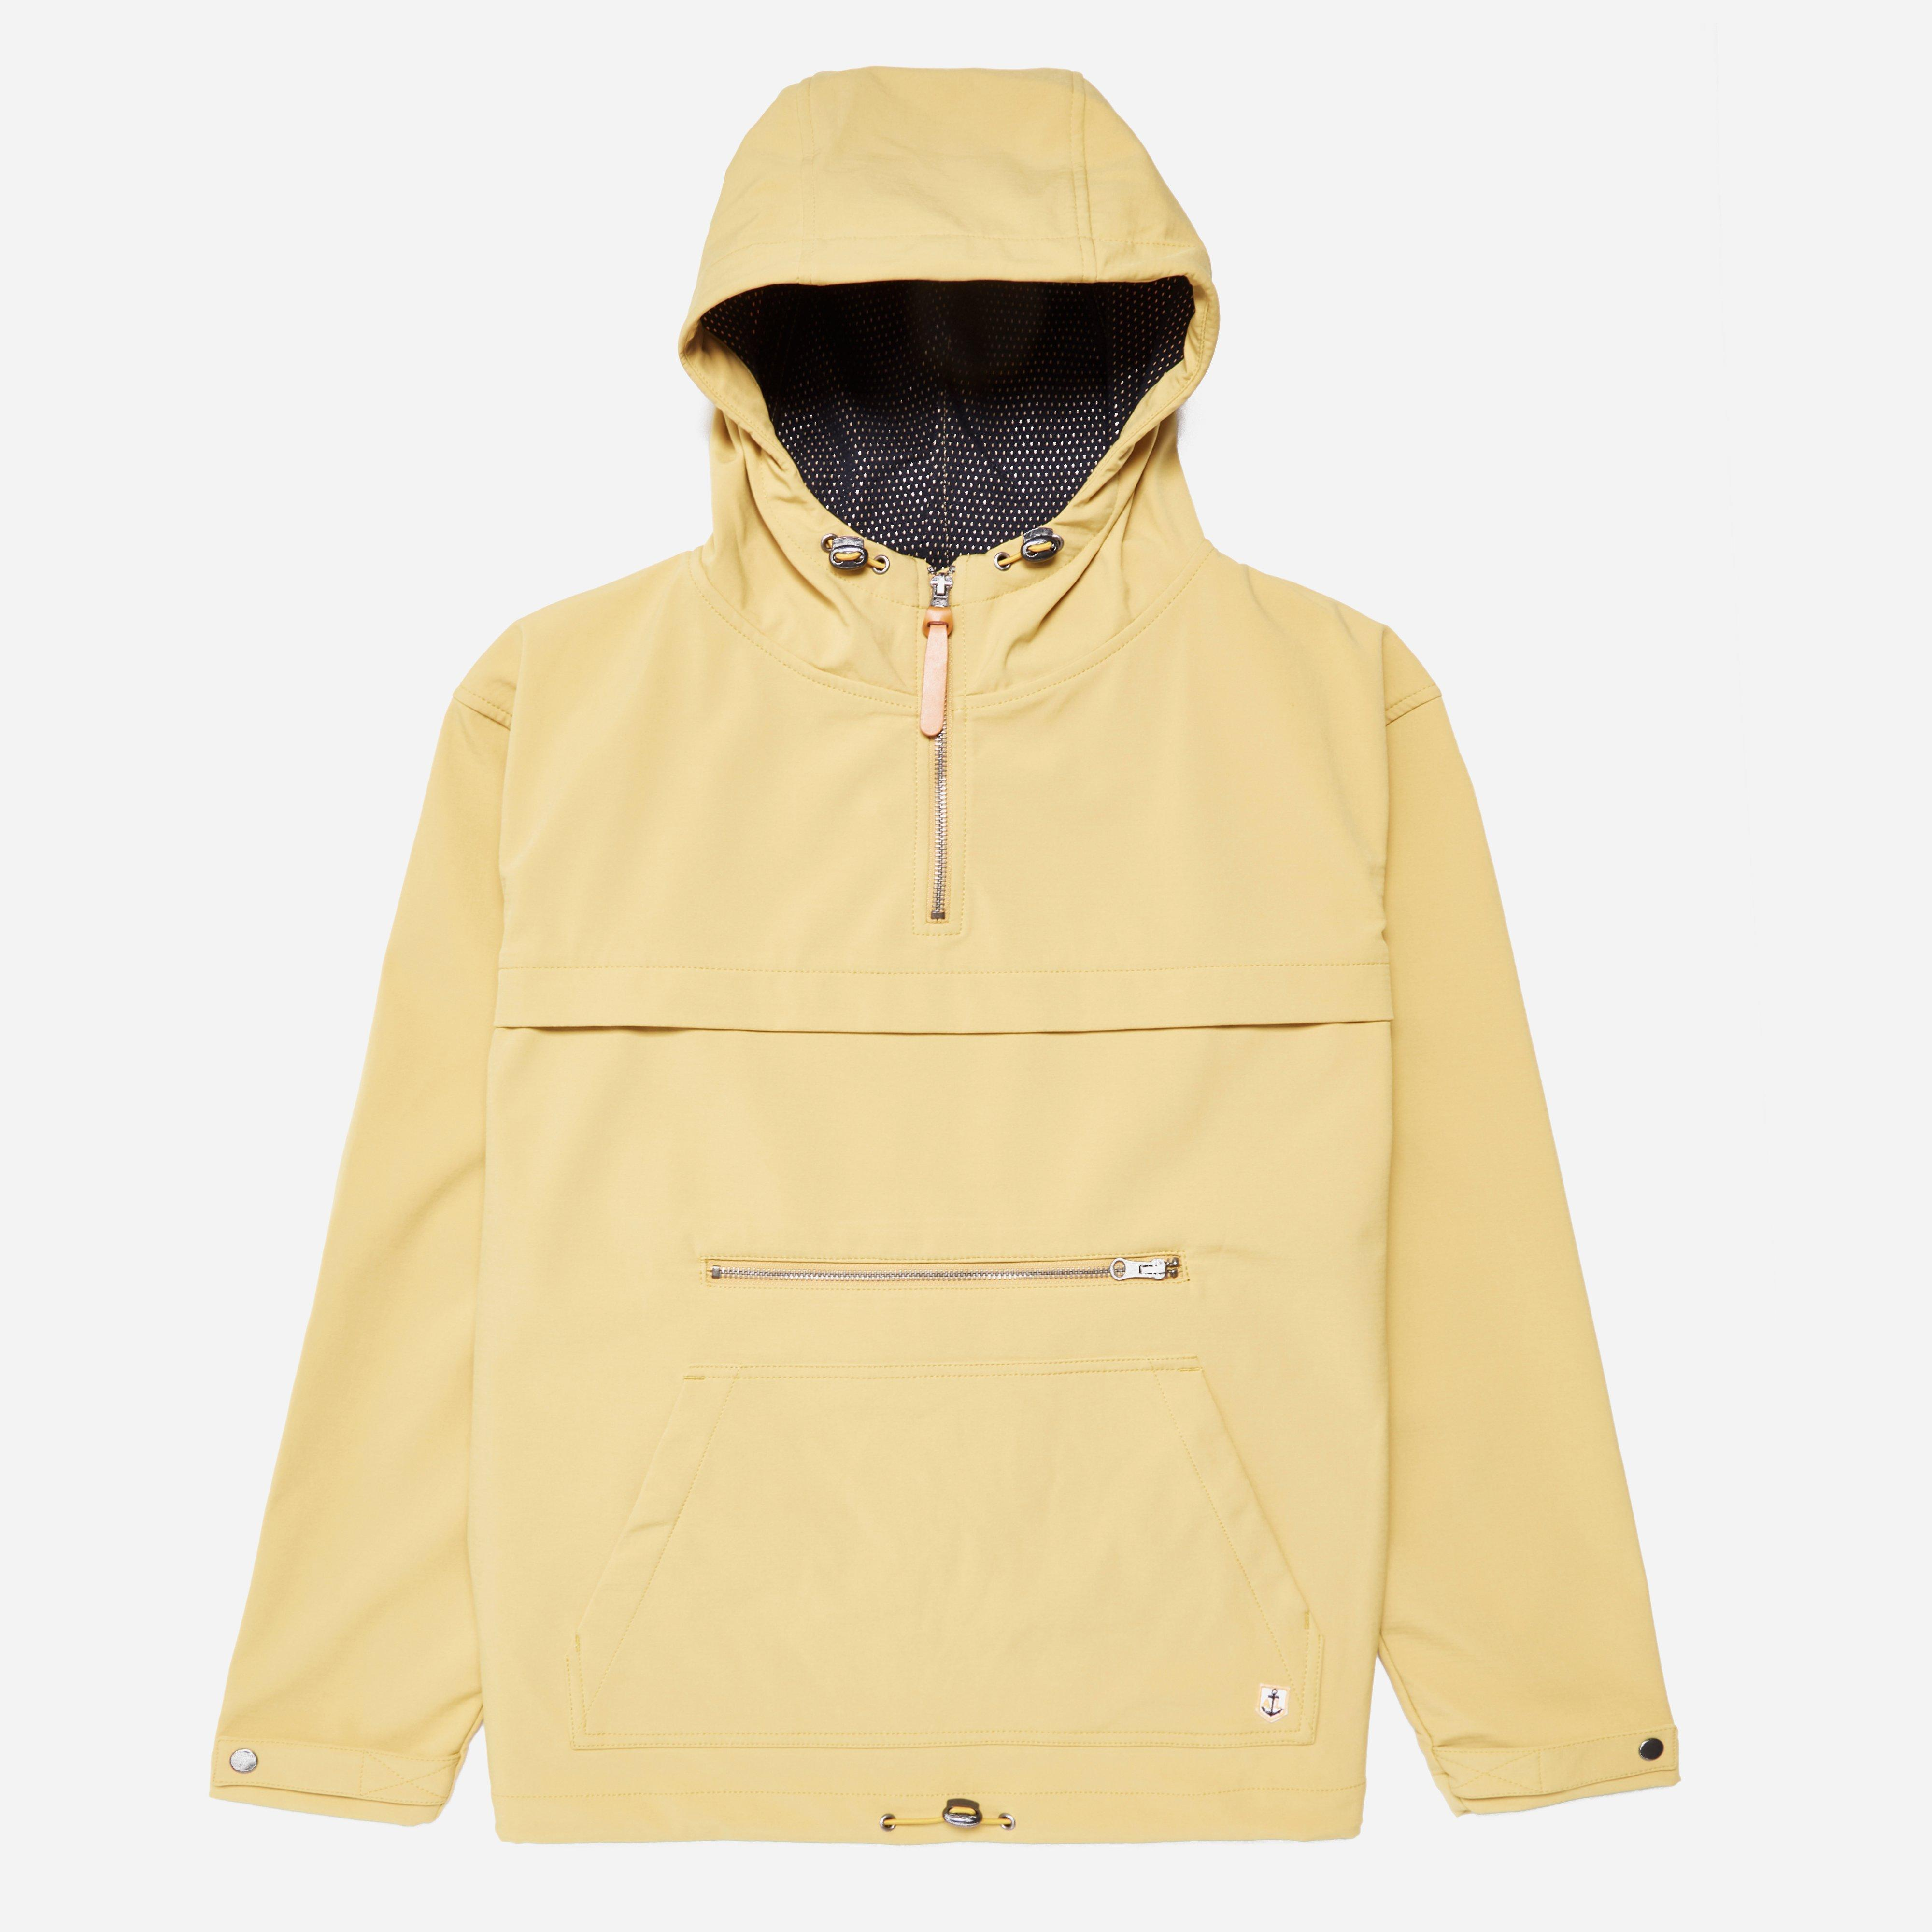 Armor Lux 75728 Heritage Smock